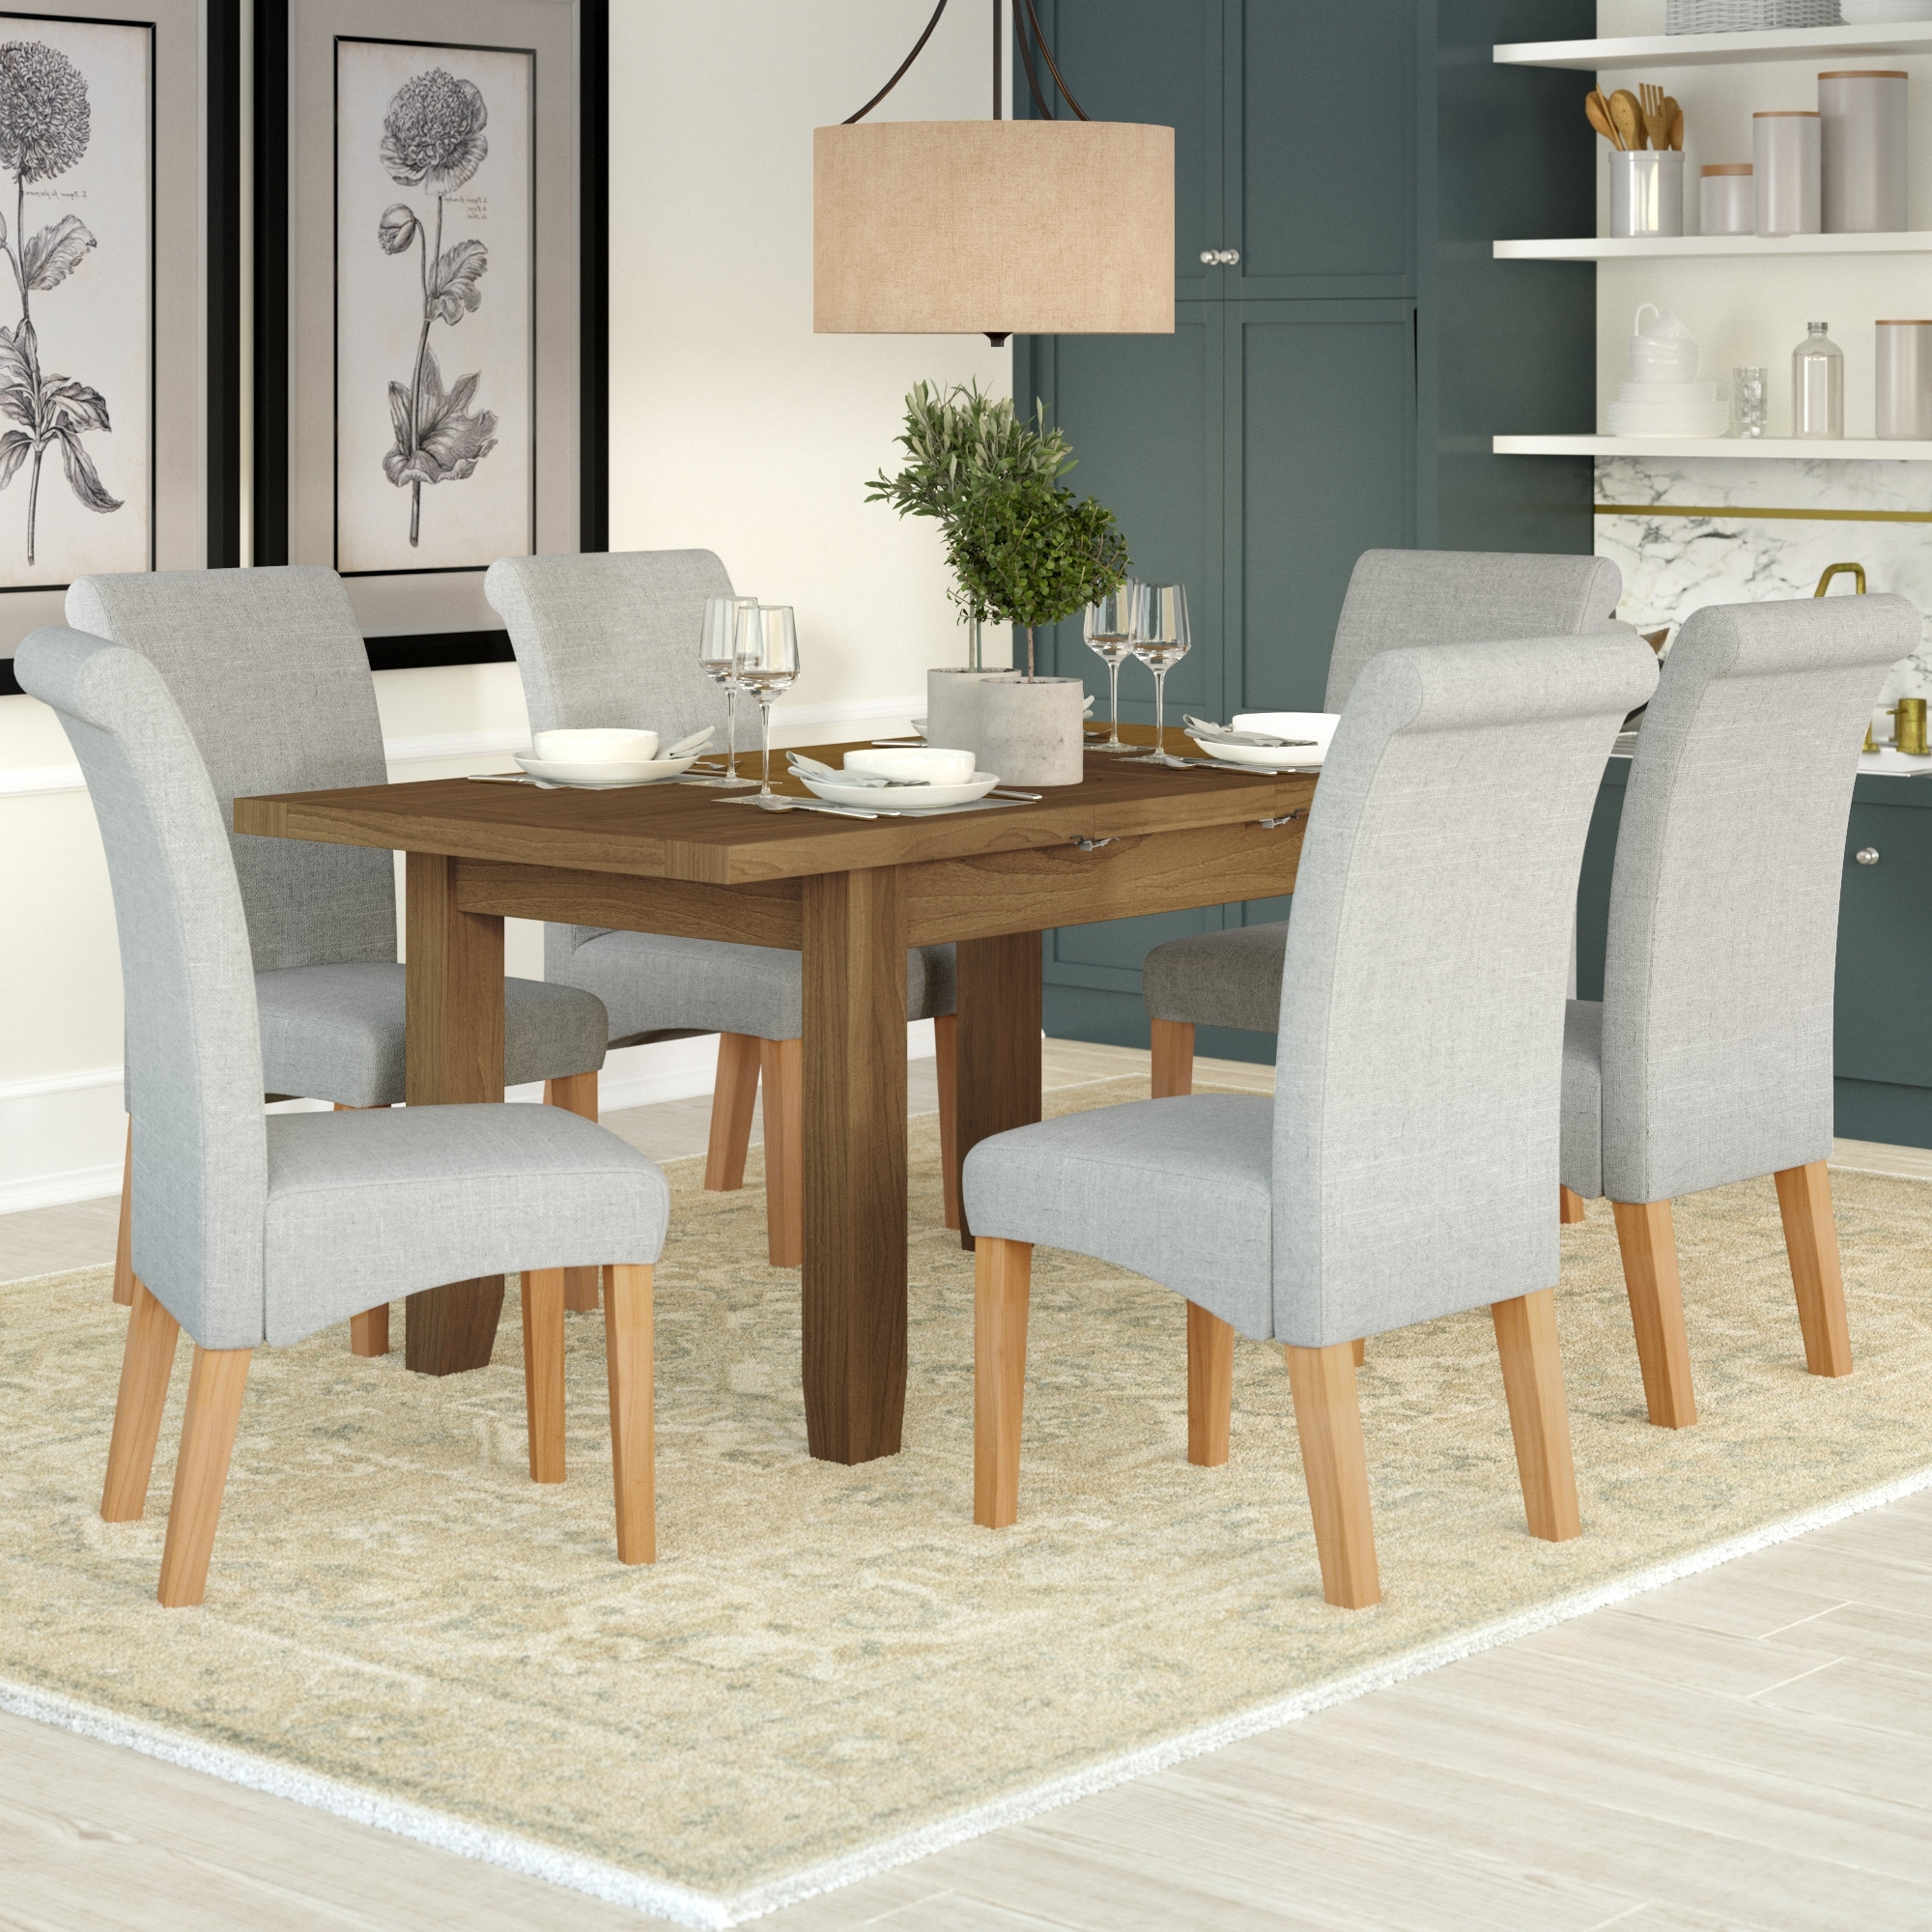 Dining Extending Tables And Chairs For Recent Three Posts Berwick Extendable Dining Table And 6 Chairs & Reviews (Gallery 11 of 25)